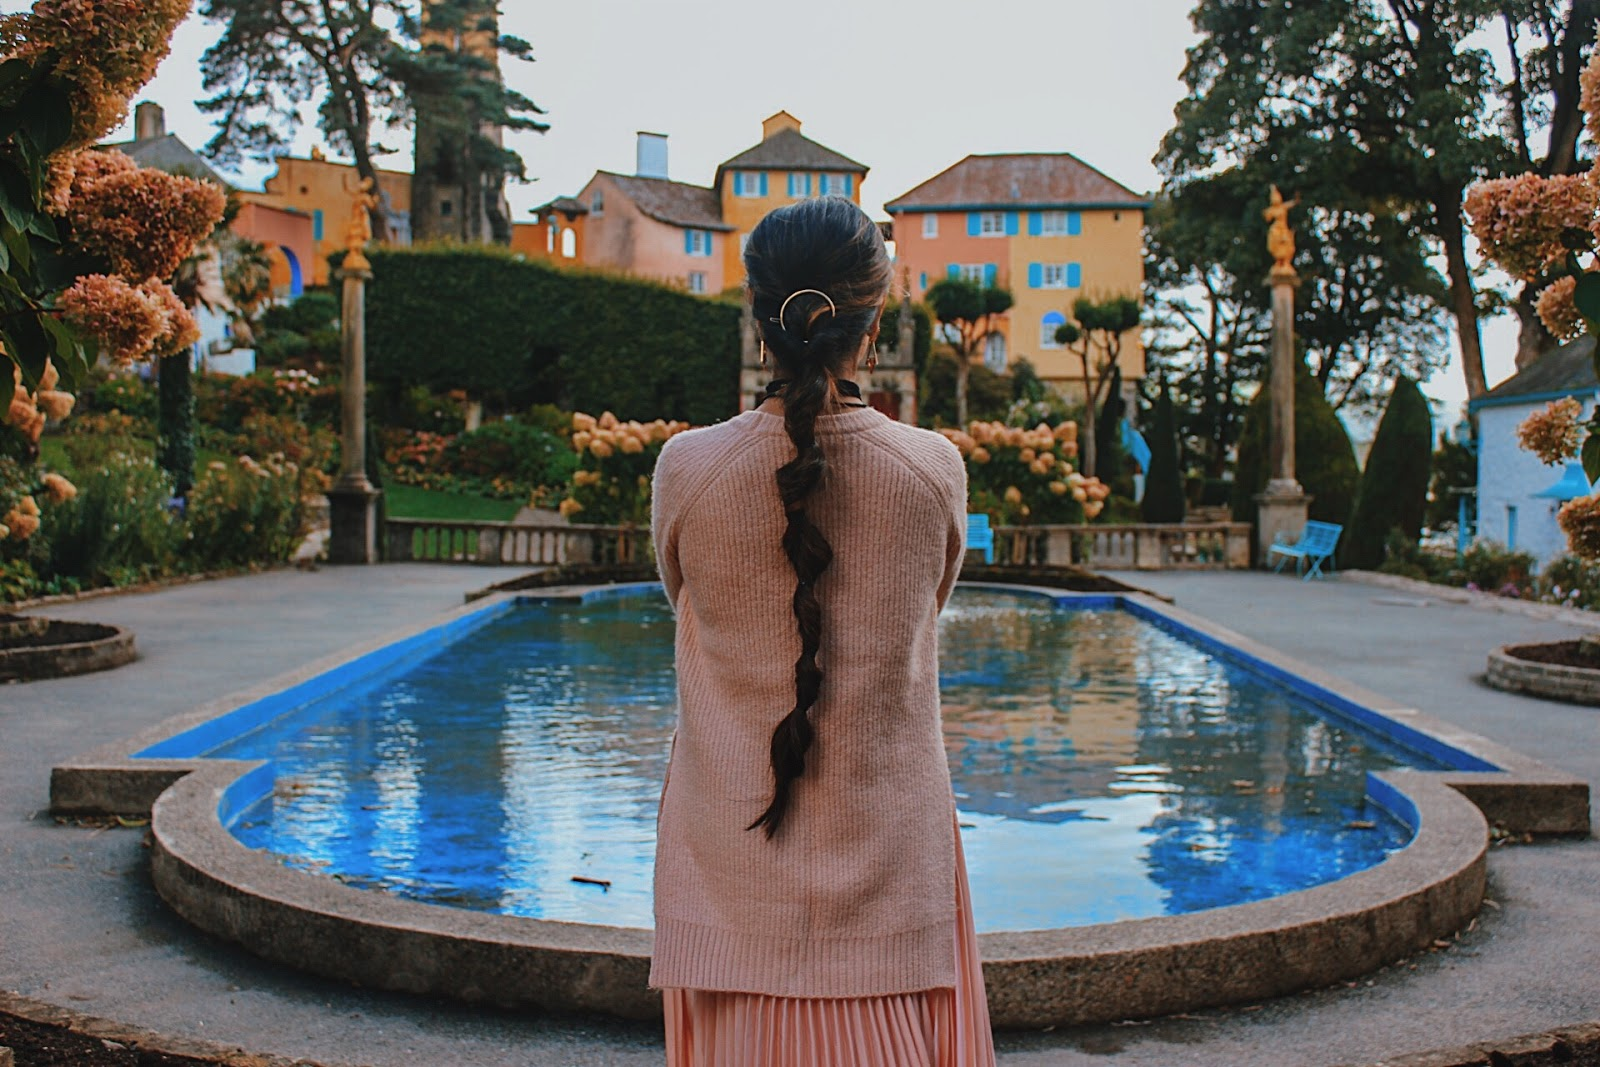 portmeirion wales, seaside places to visit uk, most beautiful village uk, must visit place uk, colourful village uk, indian blogger, london blog, uk travel blogger, all pink look, pink pleated skirt, pale pink outfit, millenial pink outfit, valentines day outfit